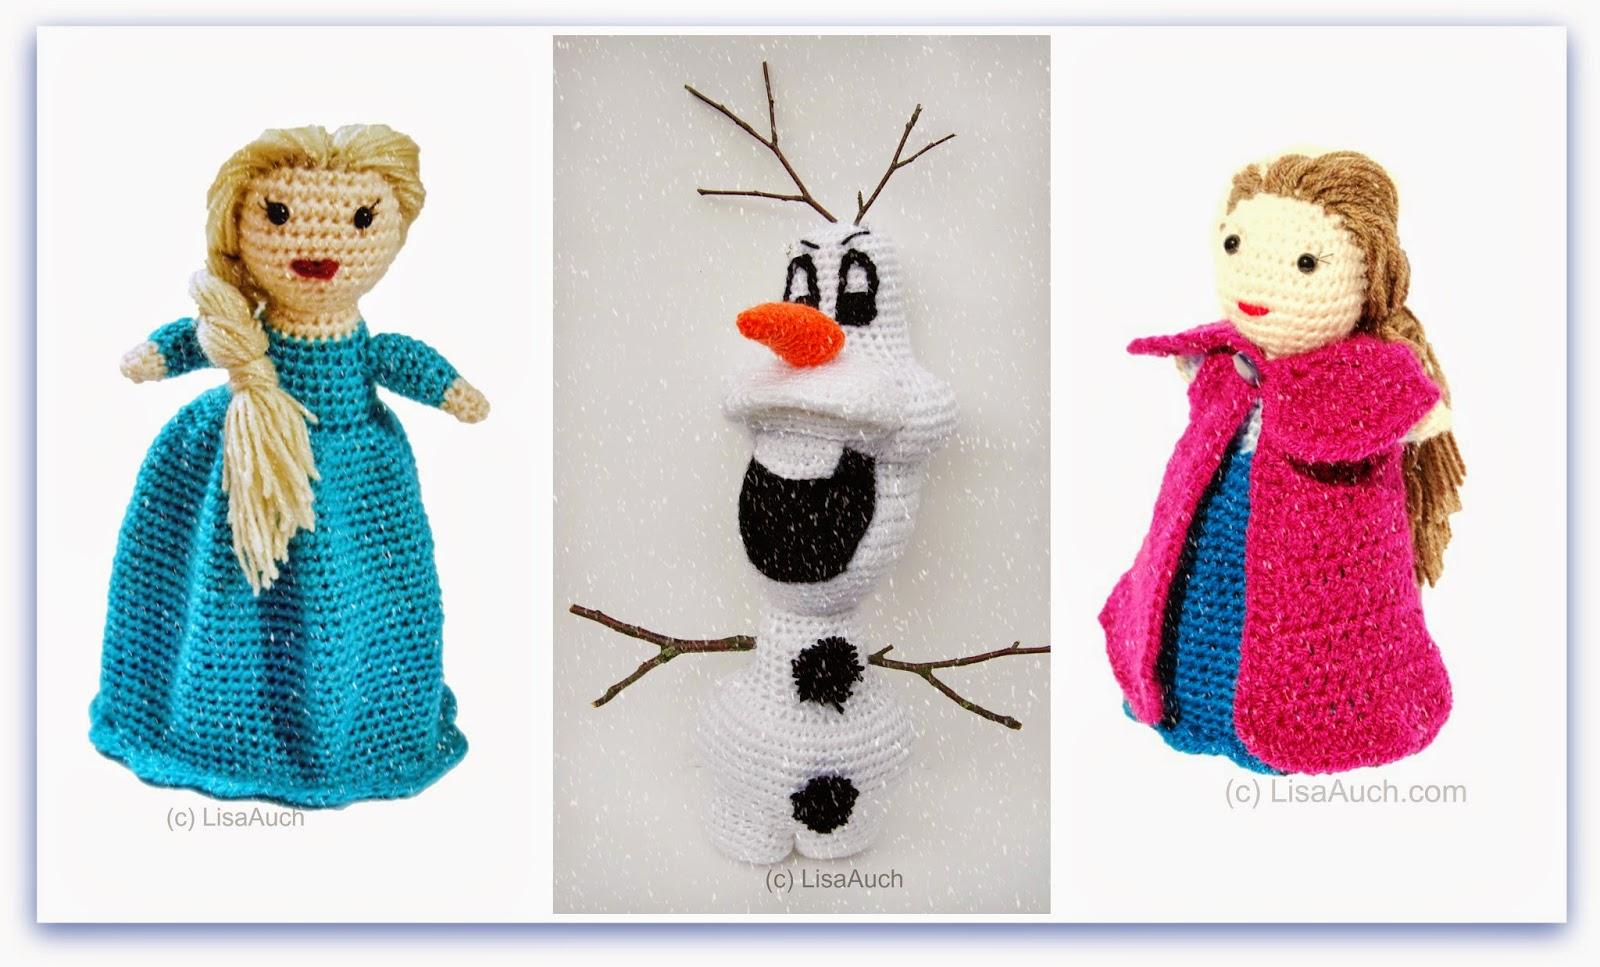 Knitting Pattern For Upside Down Doll : Free Crochet Doll Pattern Topsy Turvy Crochet Doll Pattern Ana Elsa Car Int...